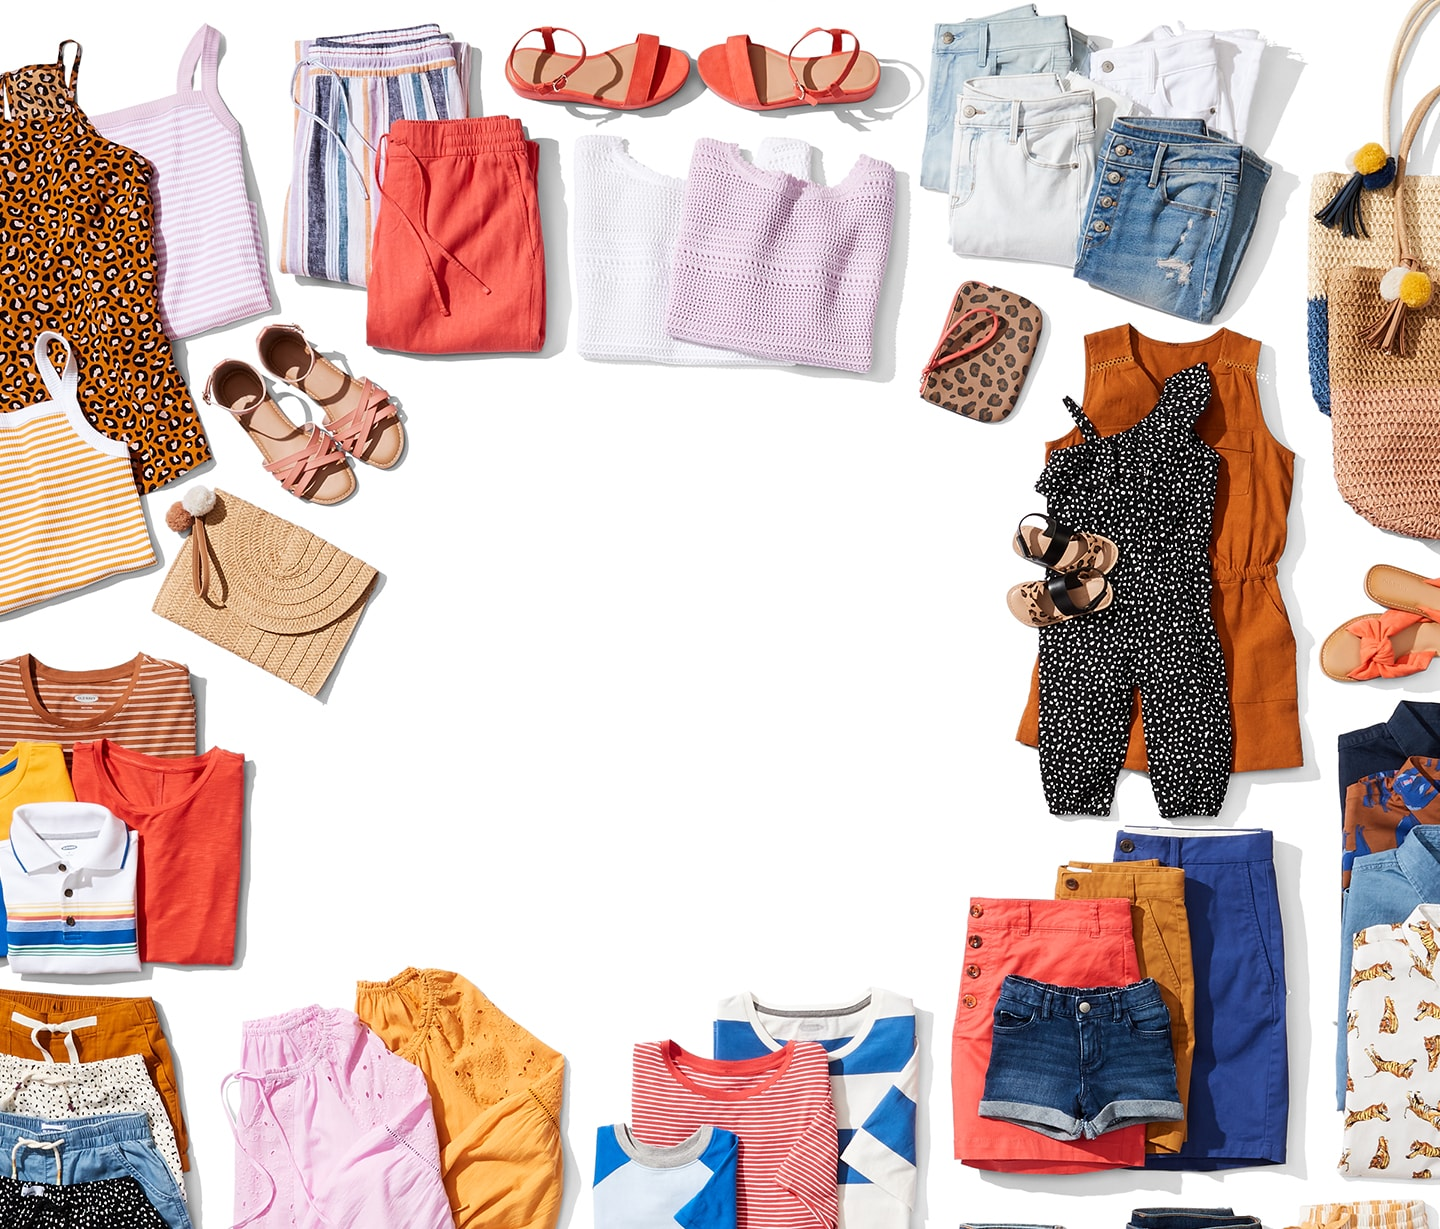 cf1a01268e2977 Clothes for women, men, kids and baby | Old Navy